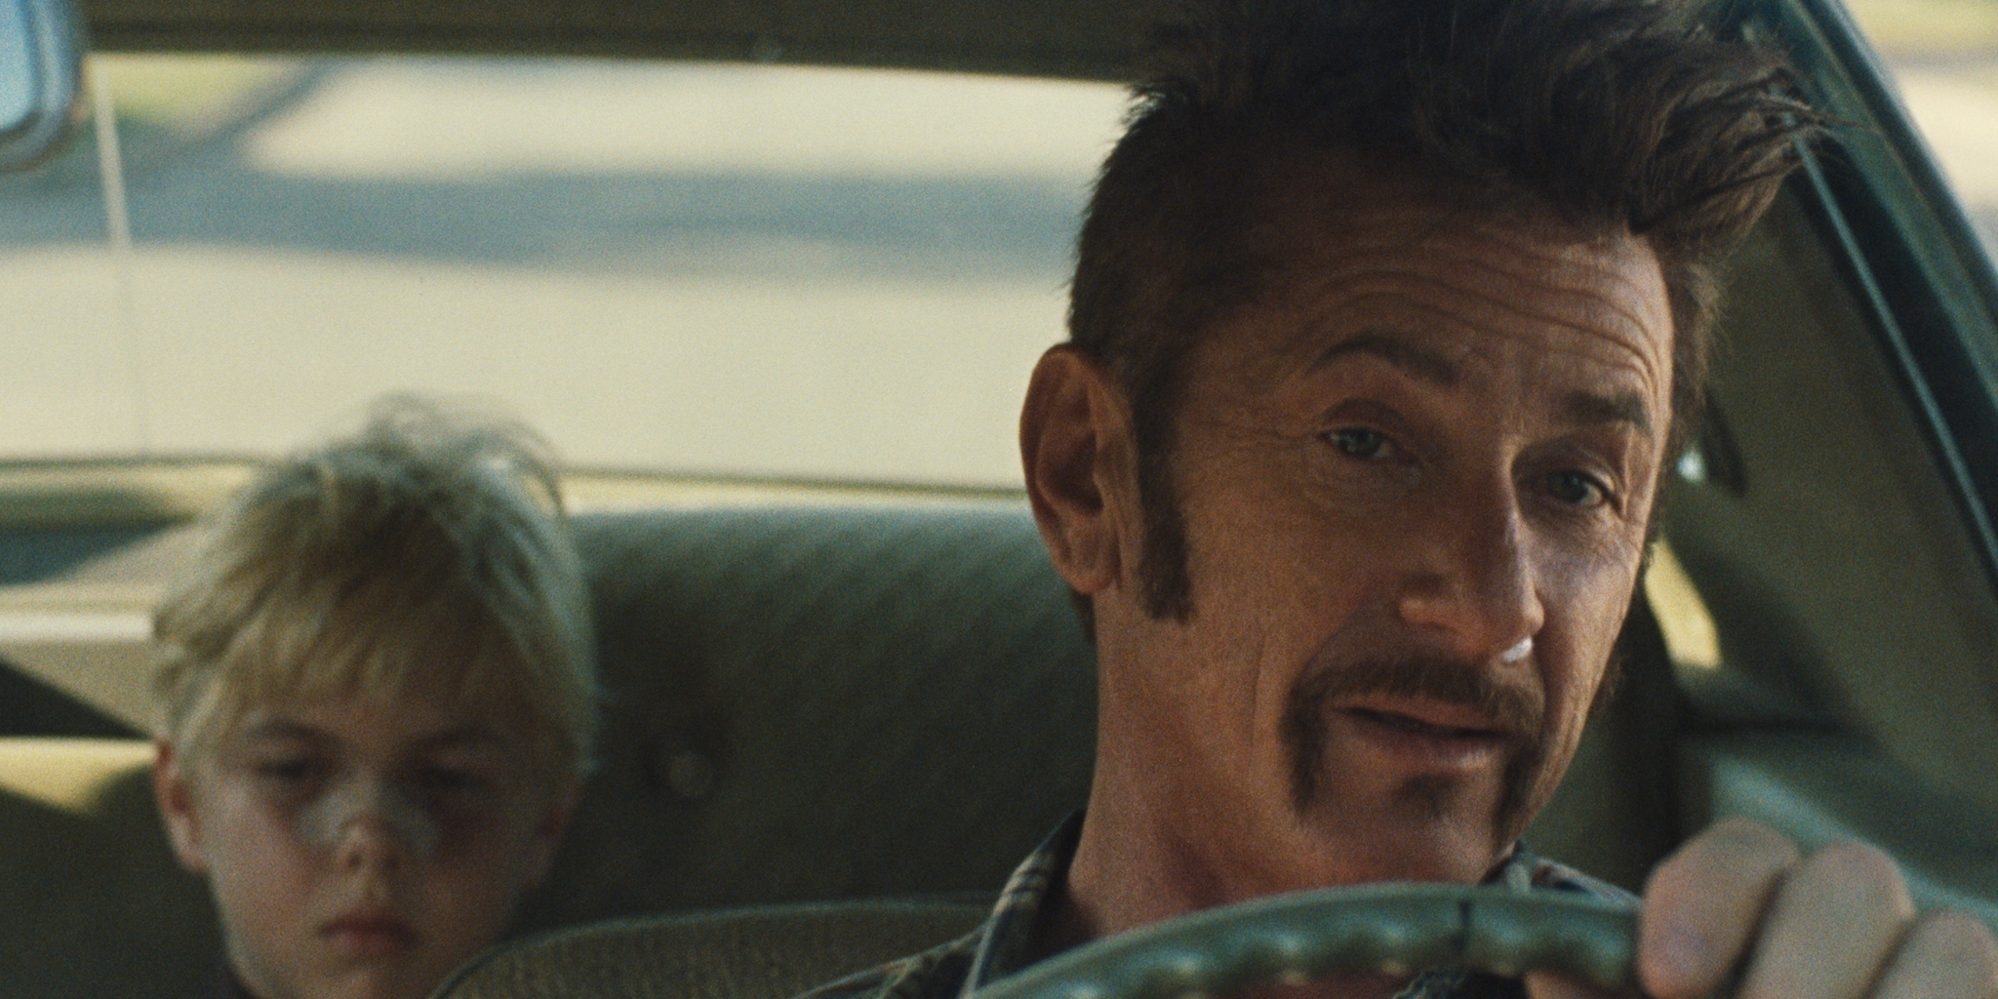 Flag Day Trailer: Sean Penn Directs His Daughter in Crime Drama – /Film